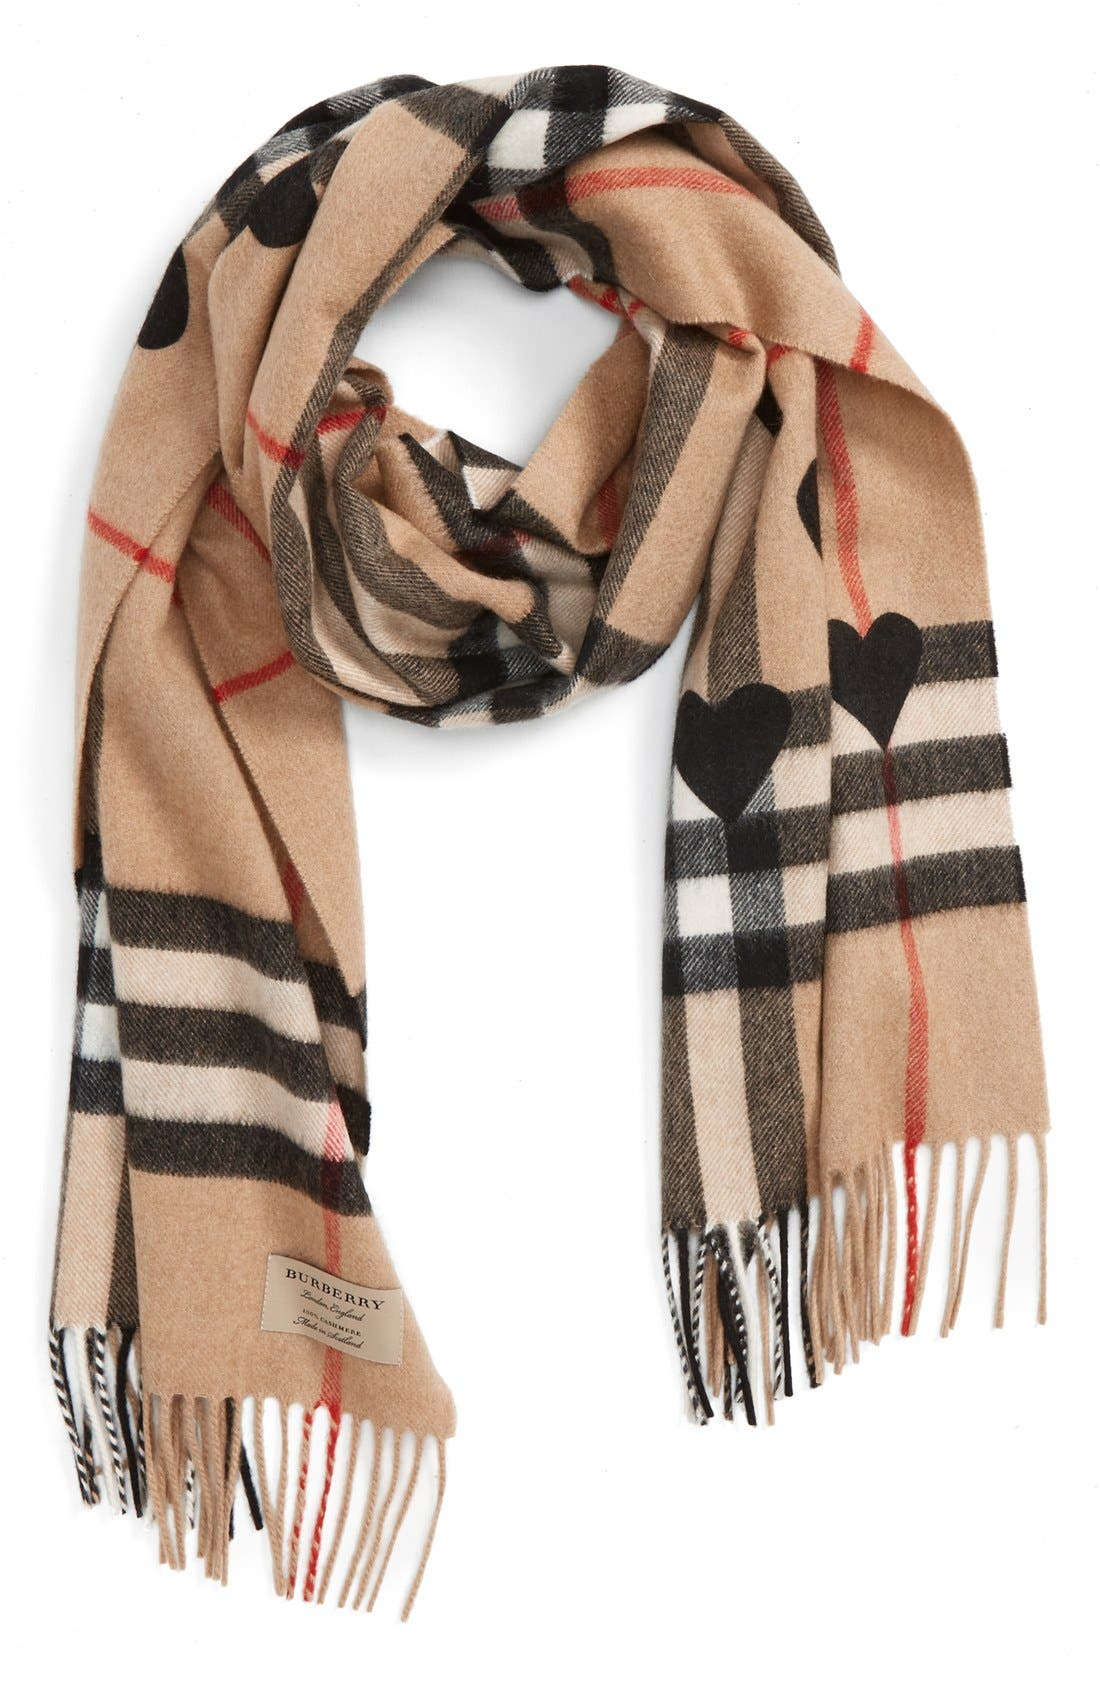 Main Image - Burberry Heart & Giant Check Fringed Cashmere Scarf